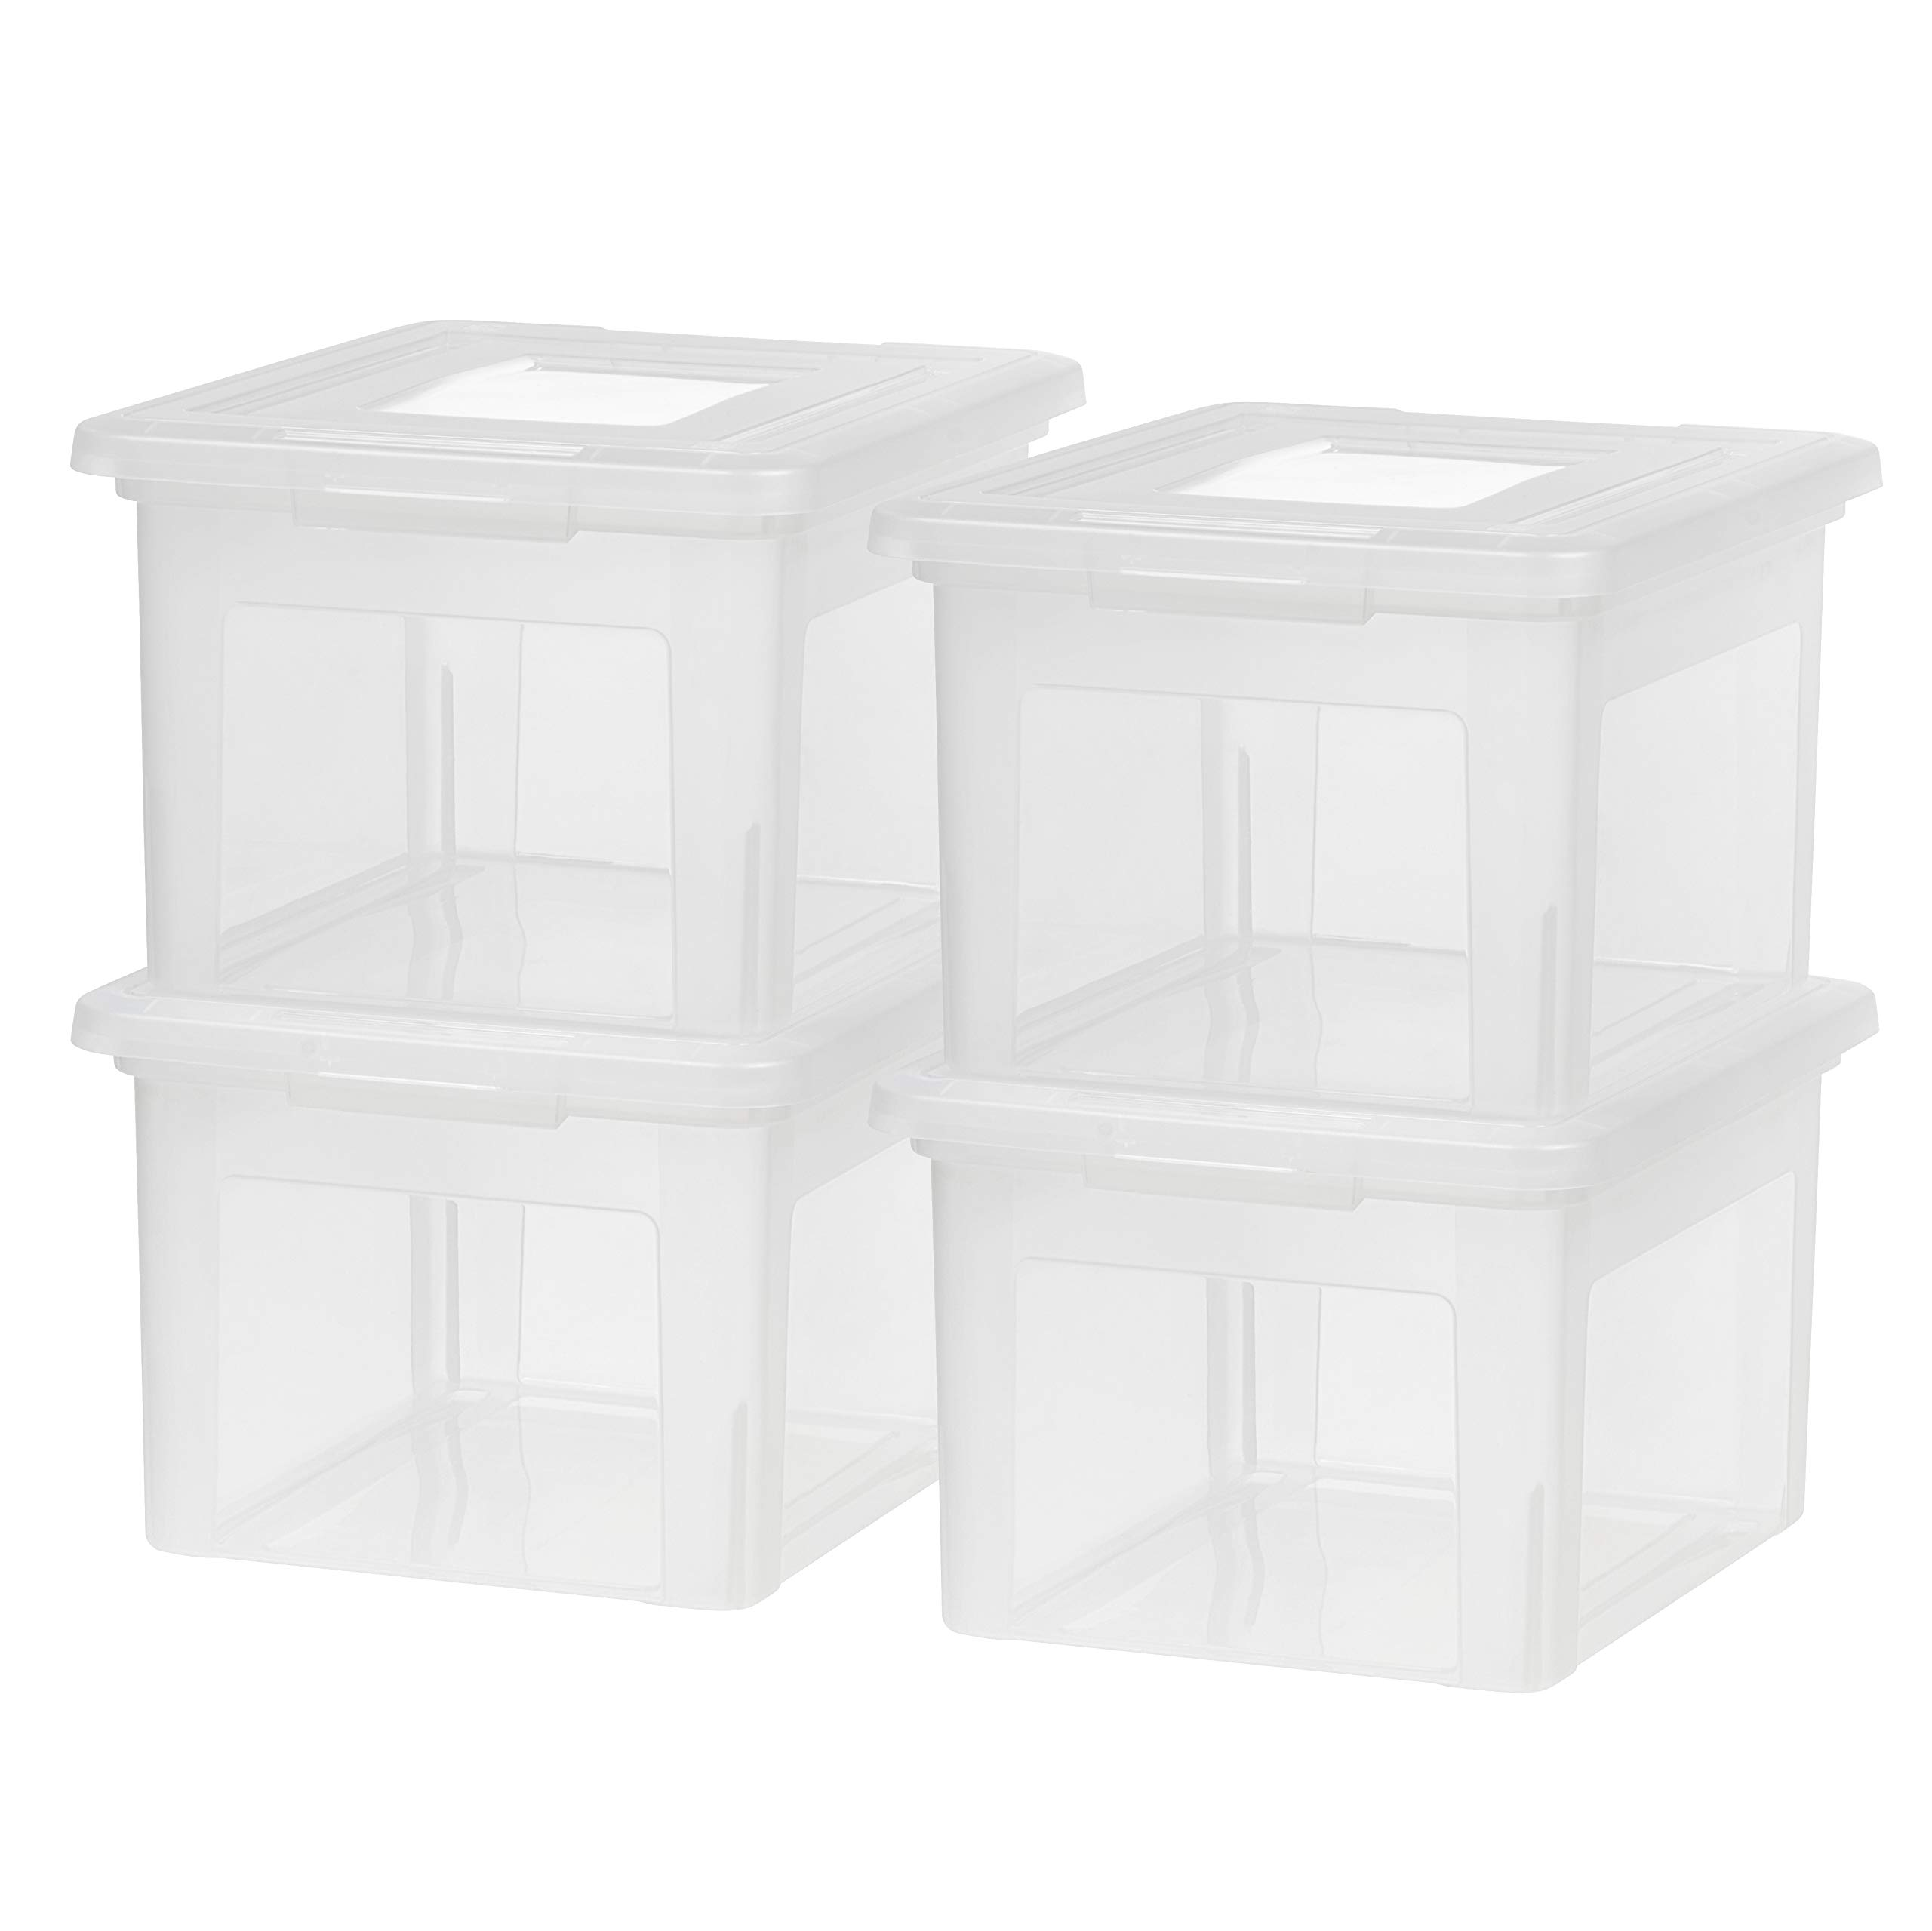 IRIS USA, Inc. FB-21EE Letter and Legal Size File Box, Medium, Clear, 4 Pack by IRIS USA, Inc.